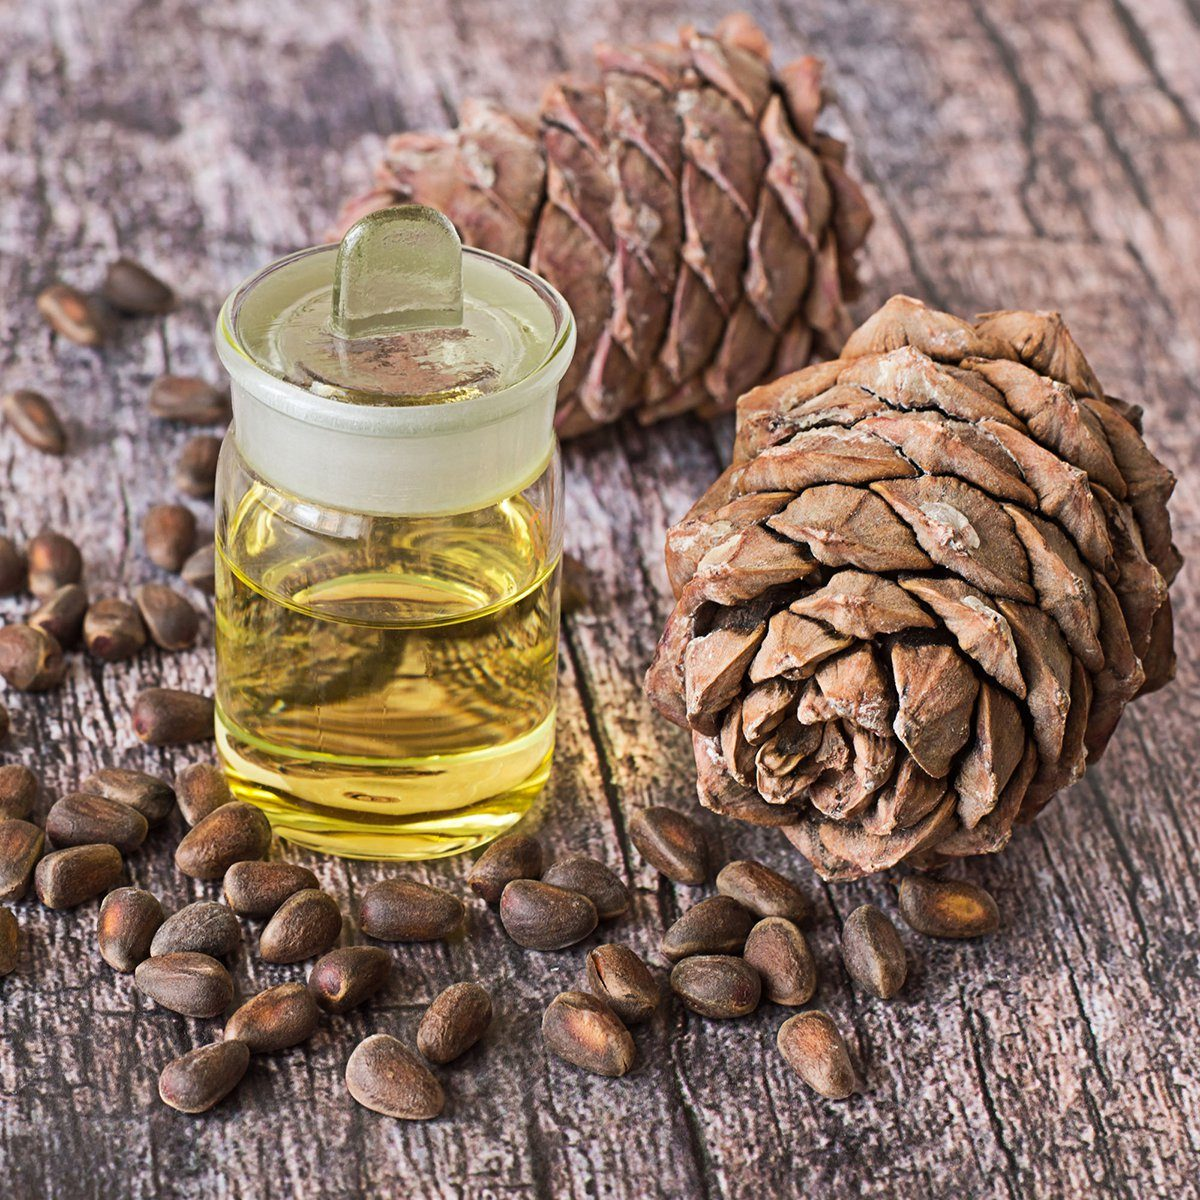 Cedar oil in a glass bottle and cedar cones with nuts on a old wooden table.